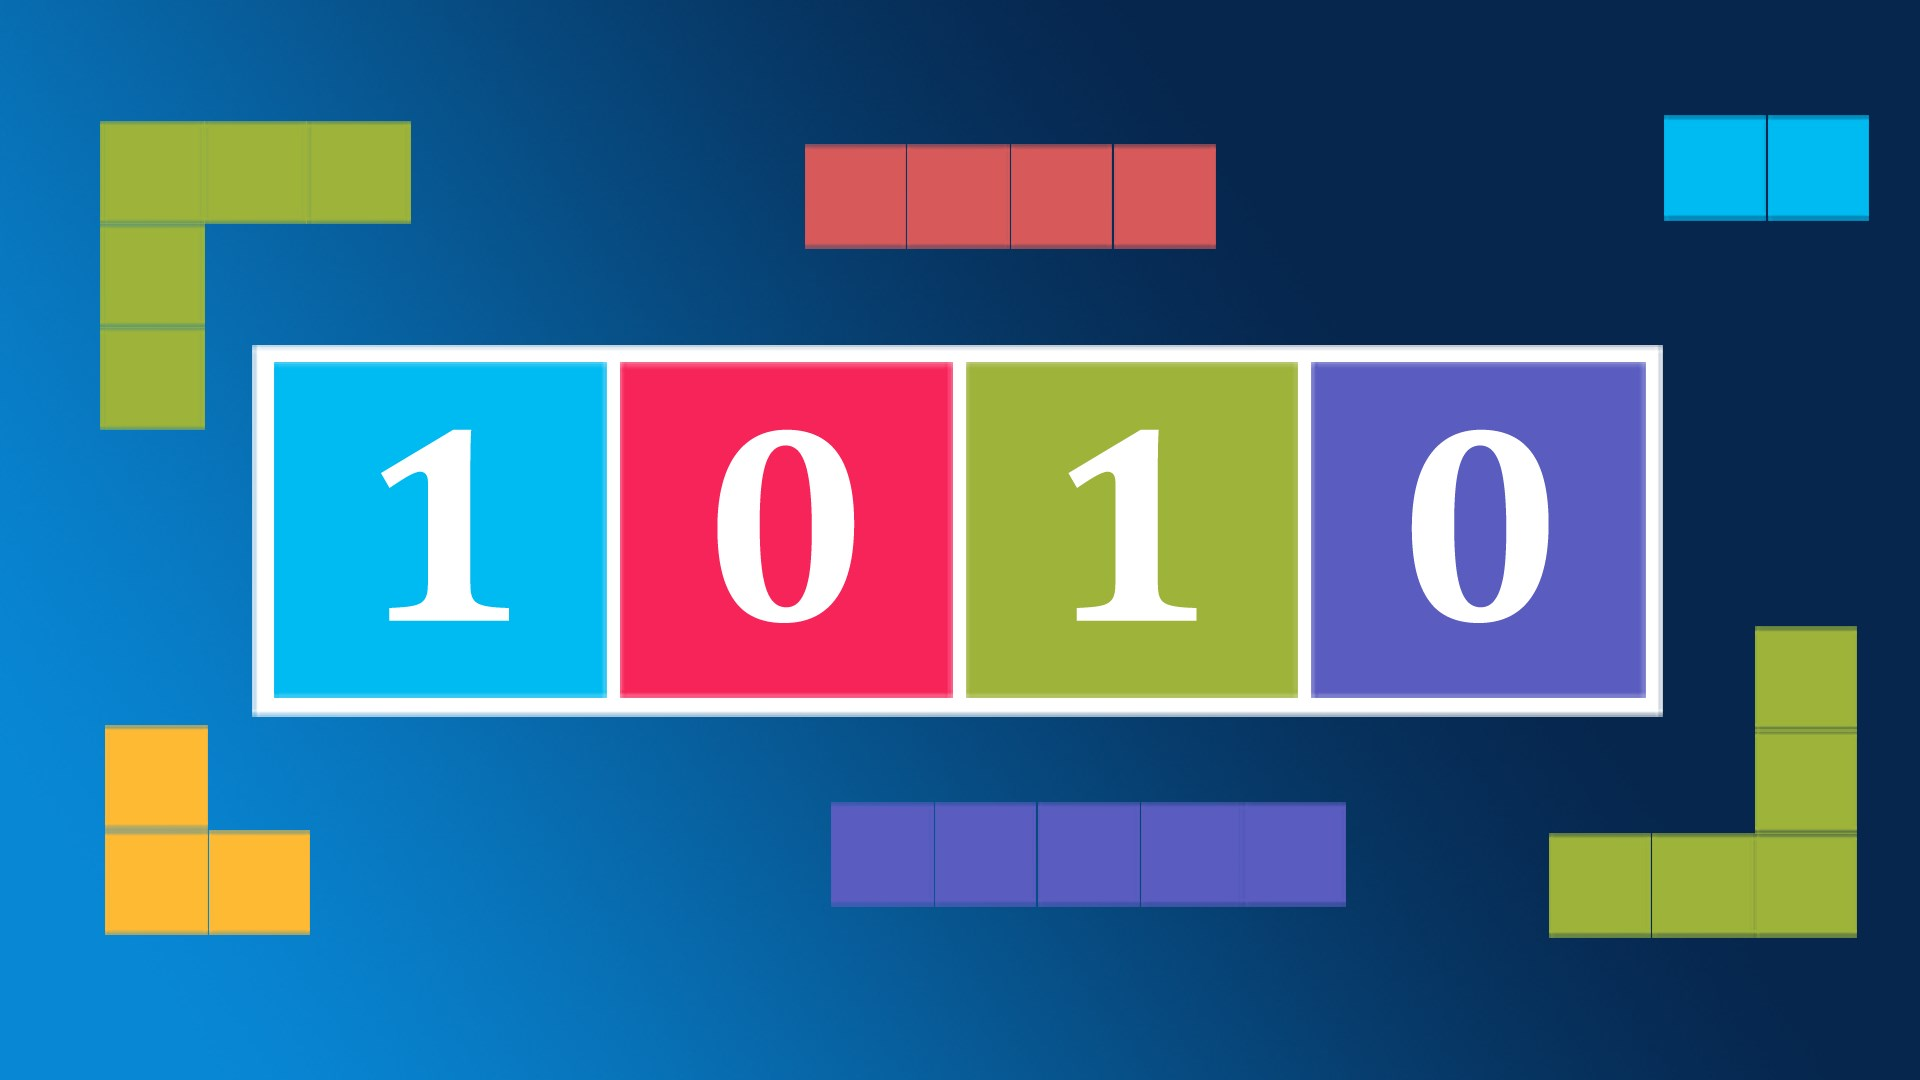 1010! Block puzzle game: vip mod: download apk apk game zone.